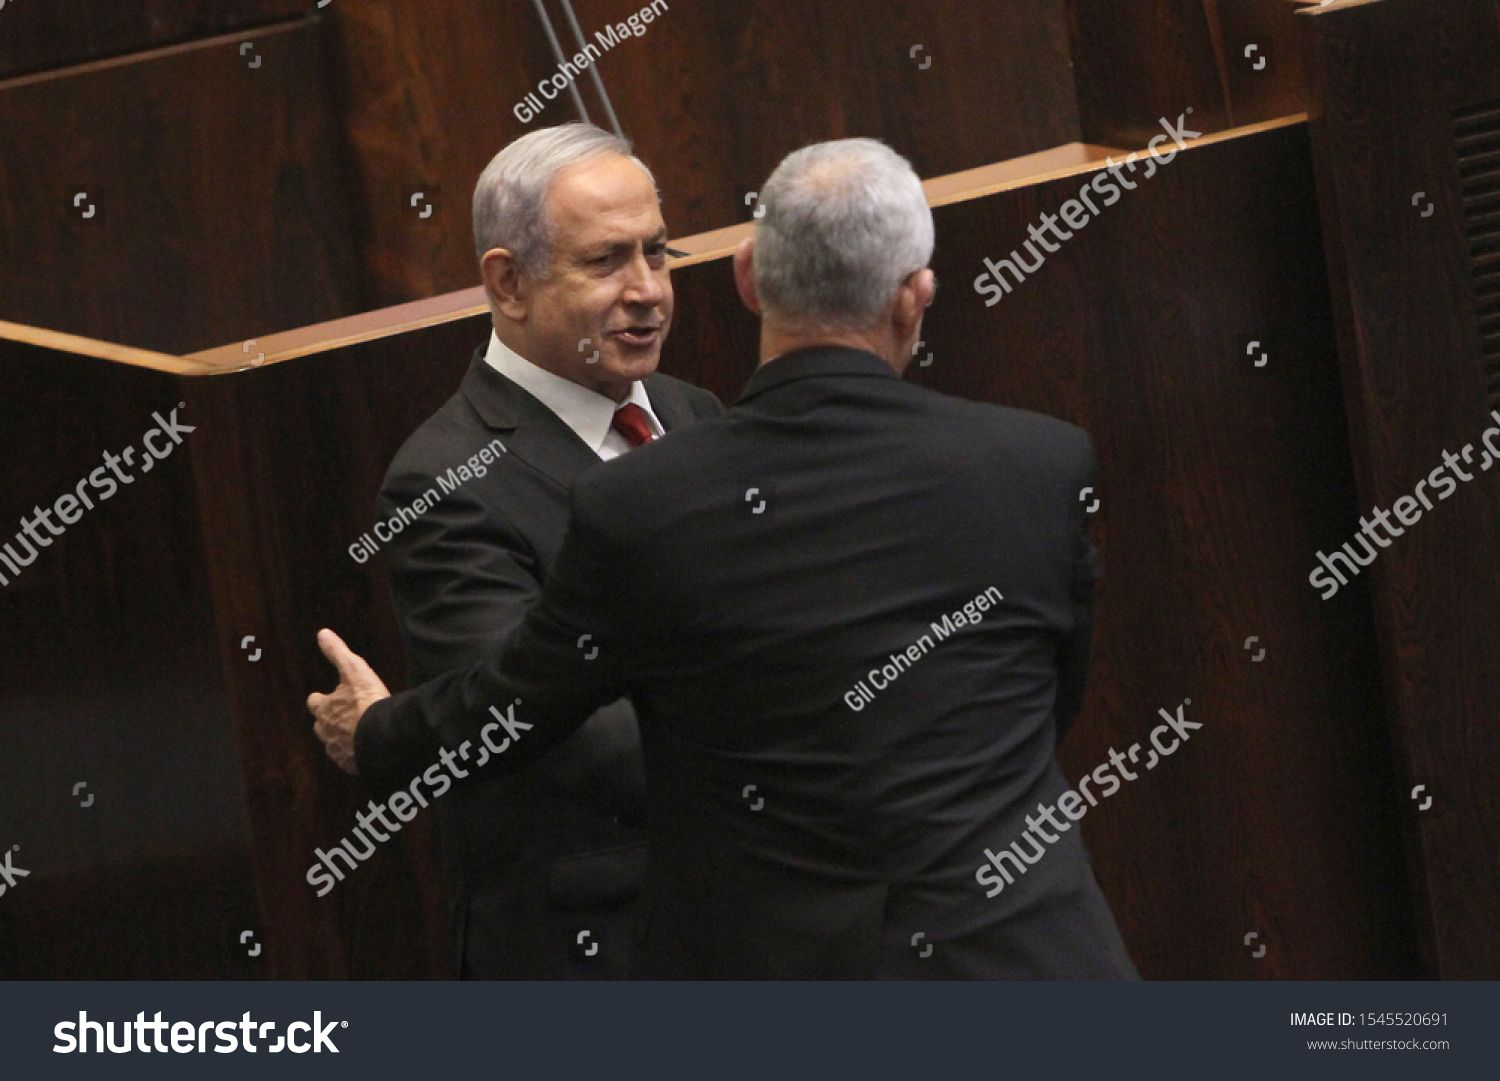 Israels Prime Minister Benjamin Netanyahu shake Hands with Blue and White party leader Benny Gantz during a memorial for the slain cabinet minister Rehavam Zeevi at the K...